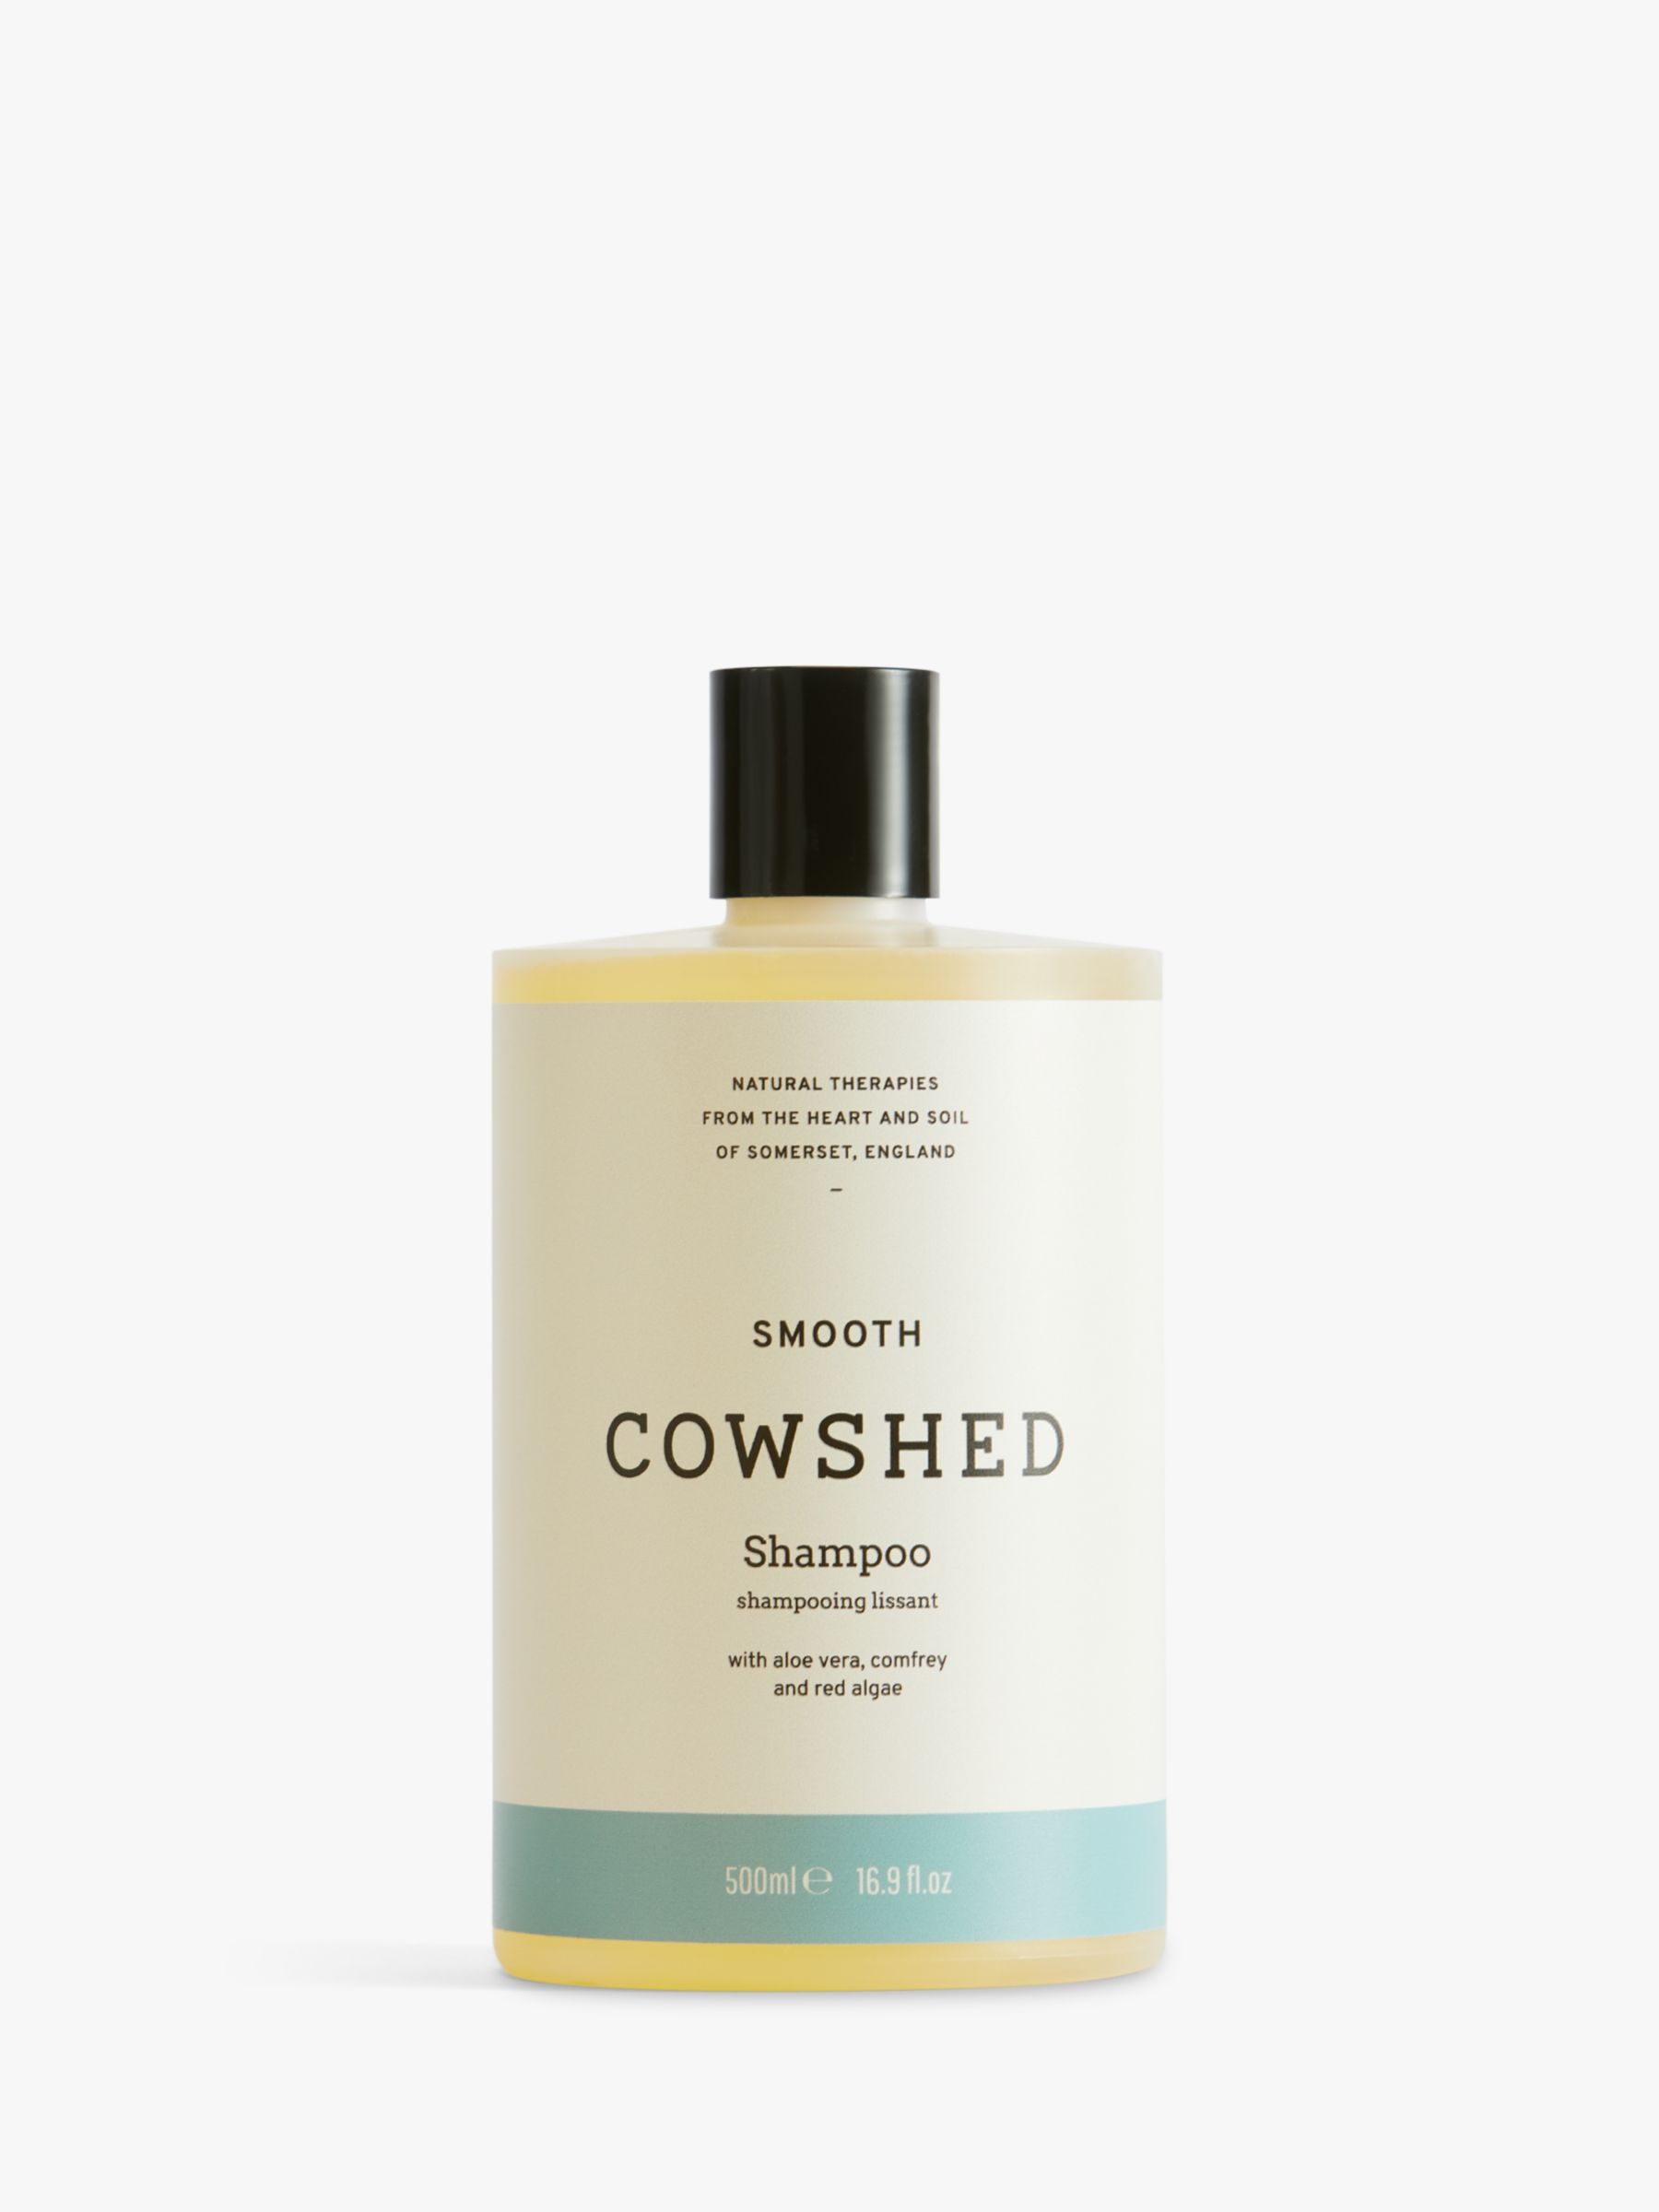 Cowshed Cowshed Smooth Shampoo, 500ml